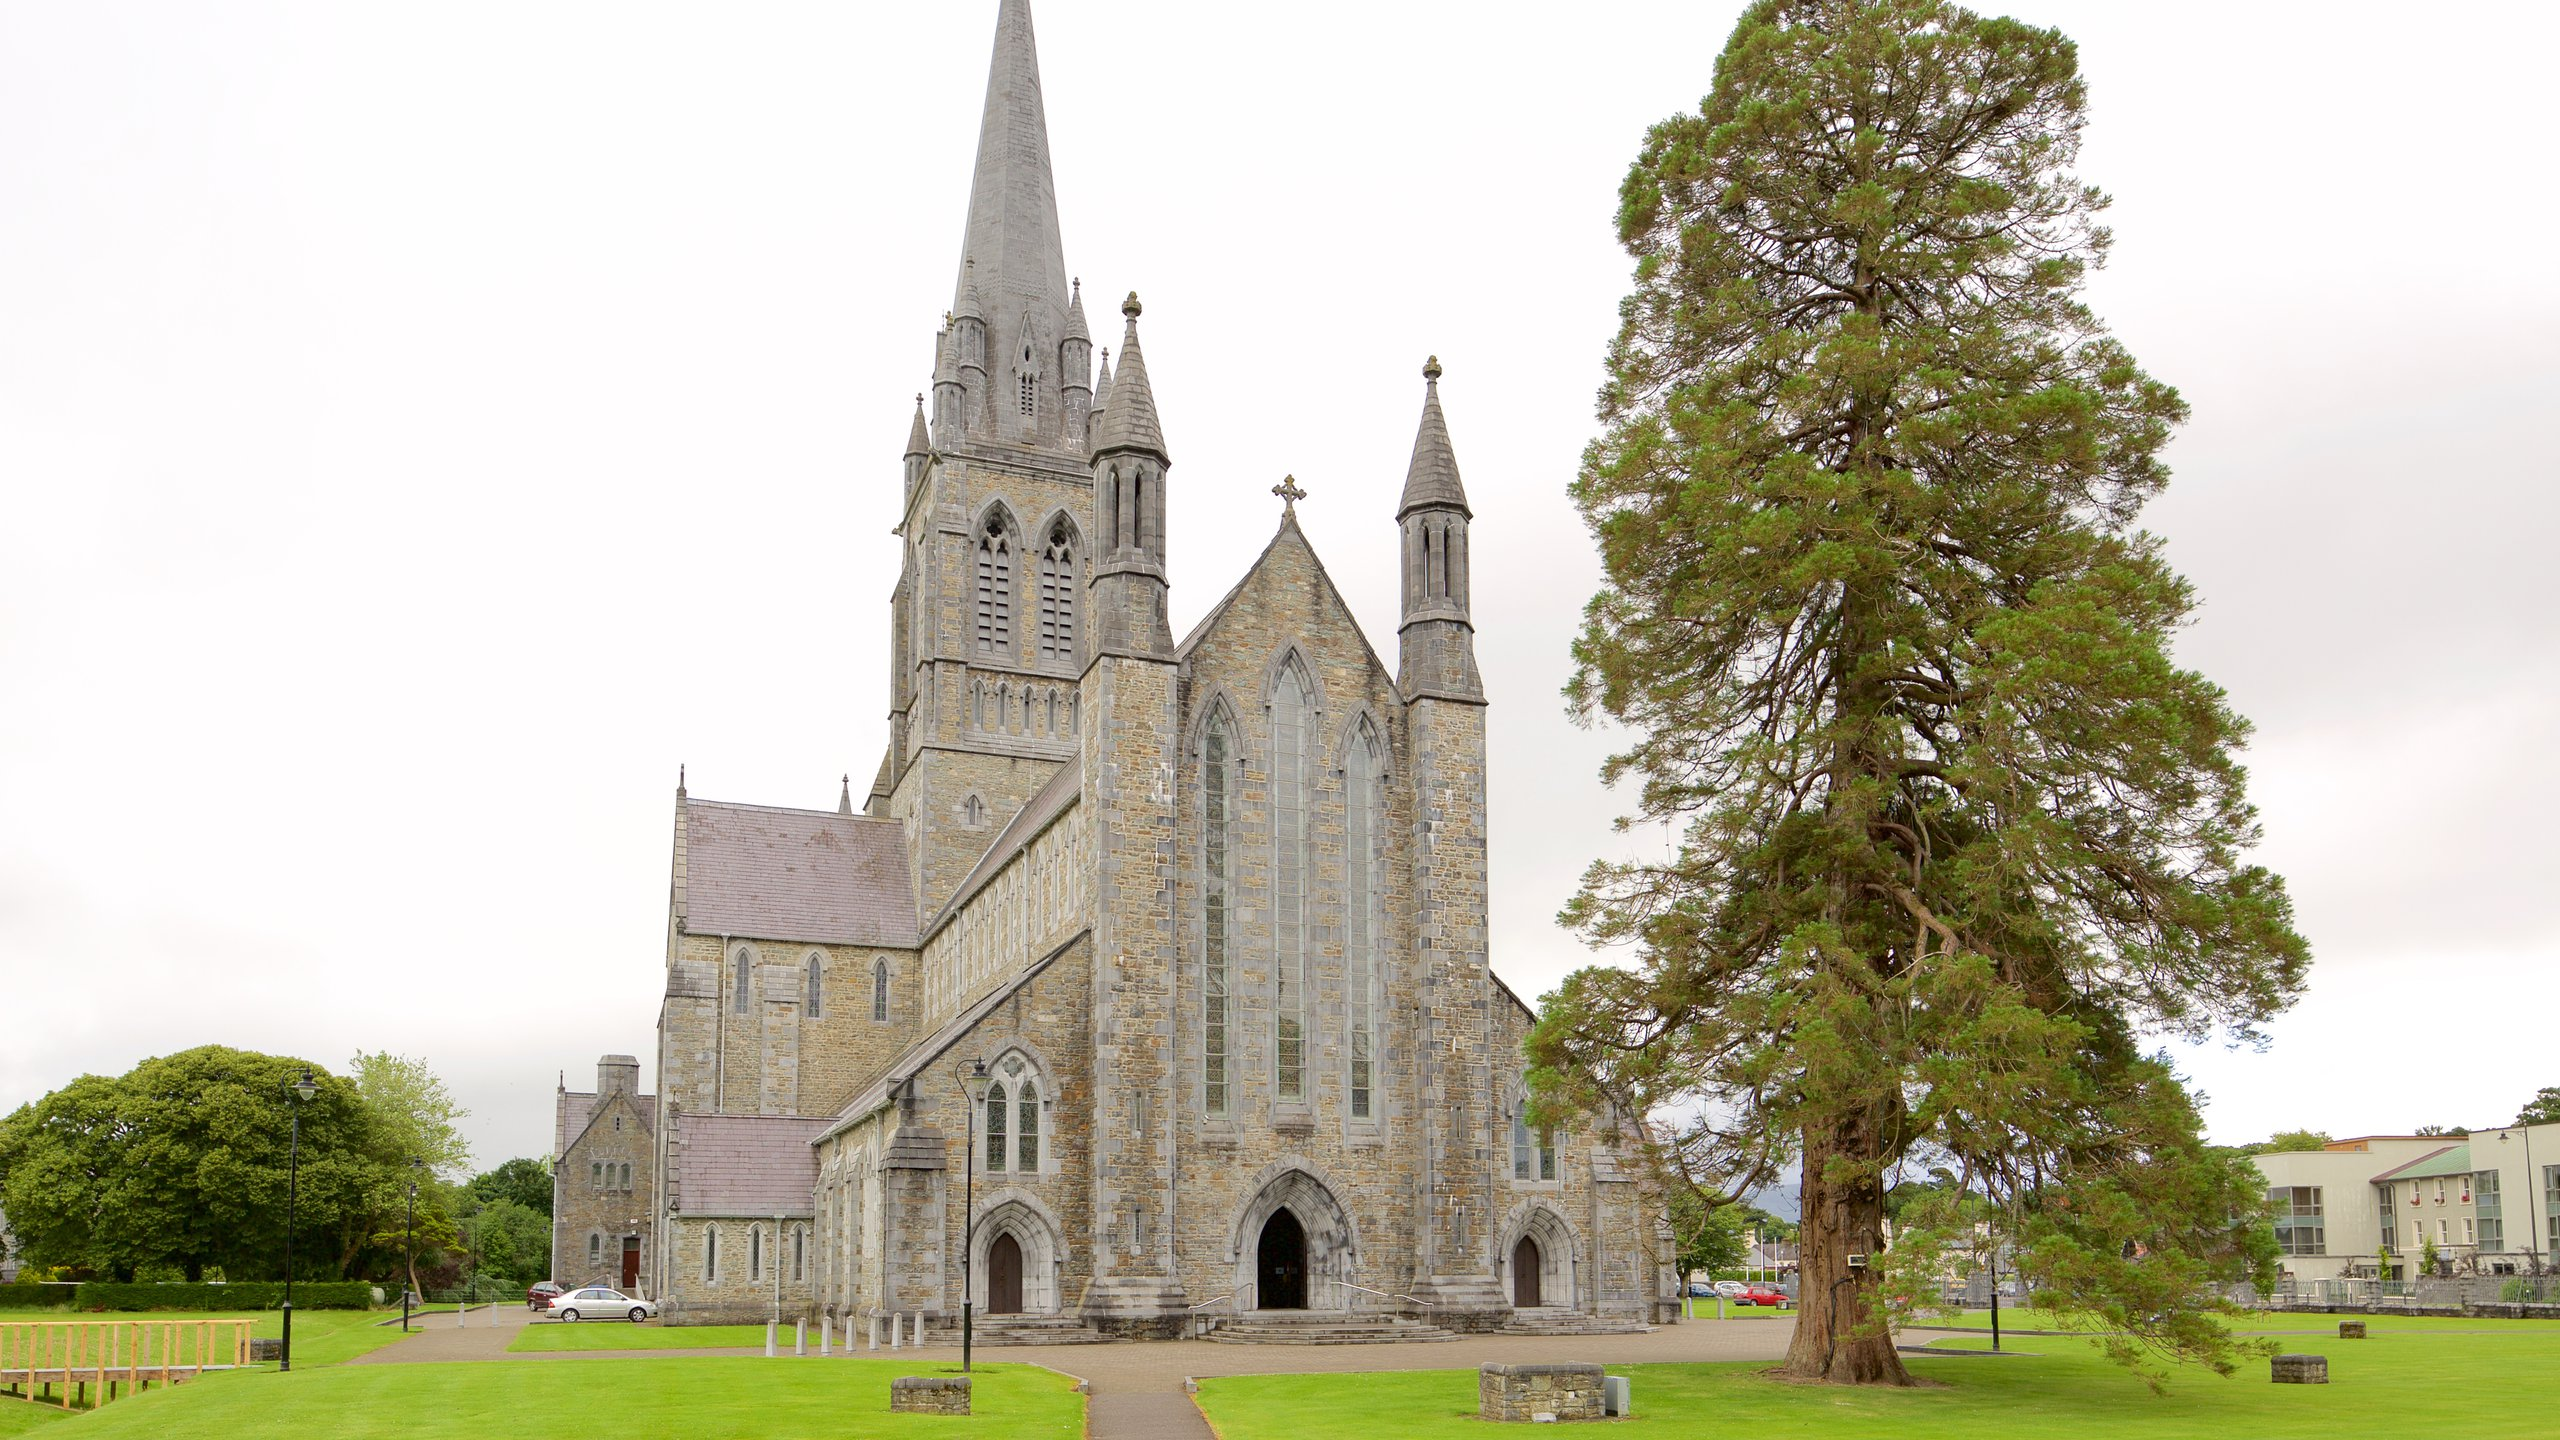 In a green field stands an impressive cathedral especially beloved by its townsfolk. Inside, find a welcoming community church decorated with beautiful stained glass.